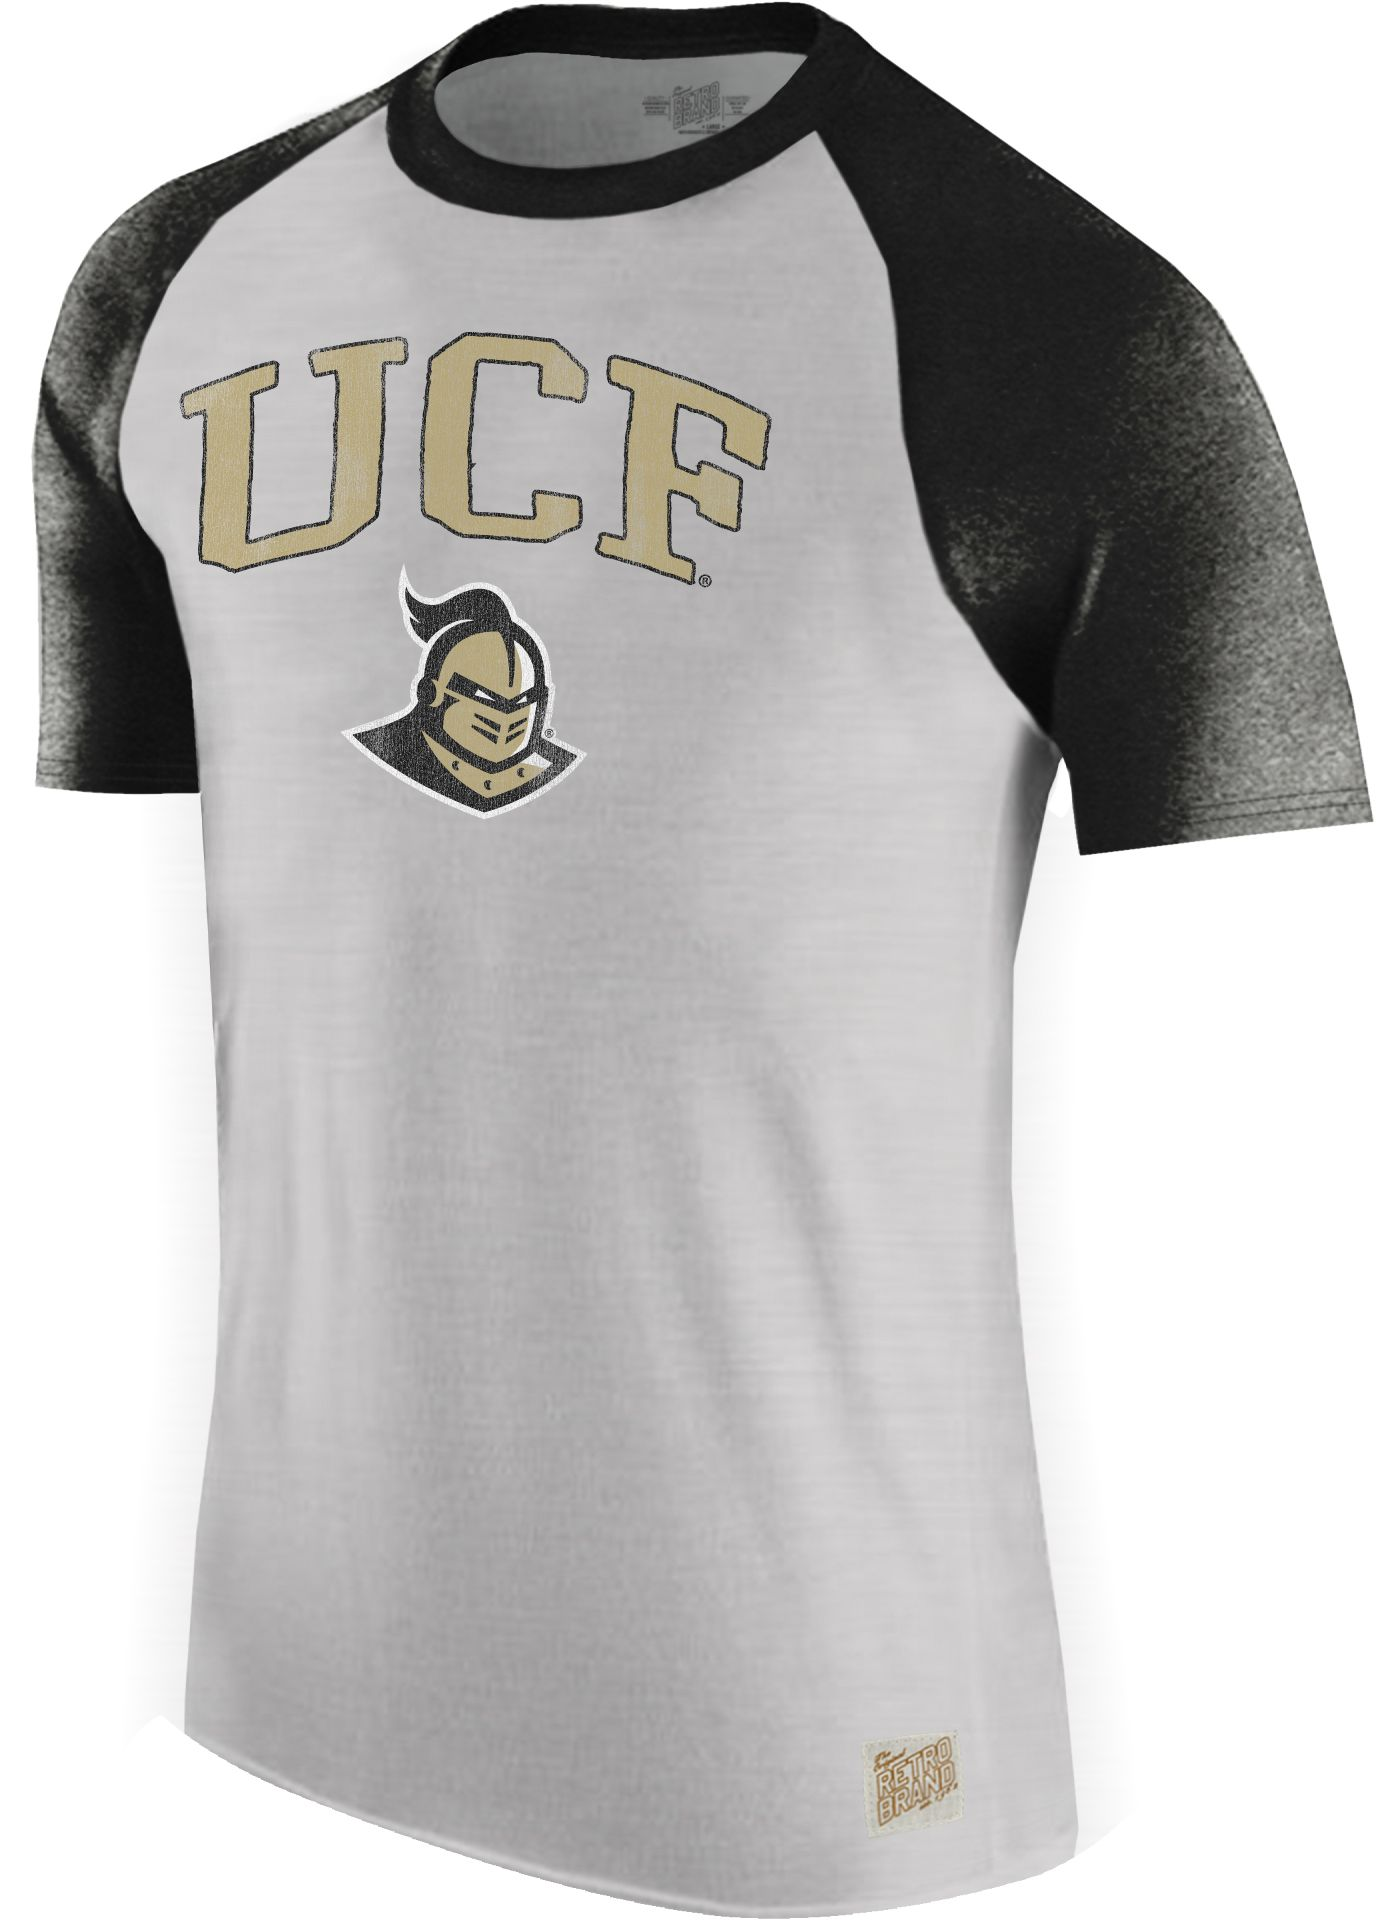 Original Retro Brand Men's UCF Knights Grey/Black Raglan T-Shirt